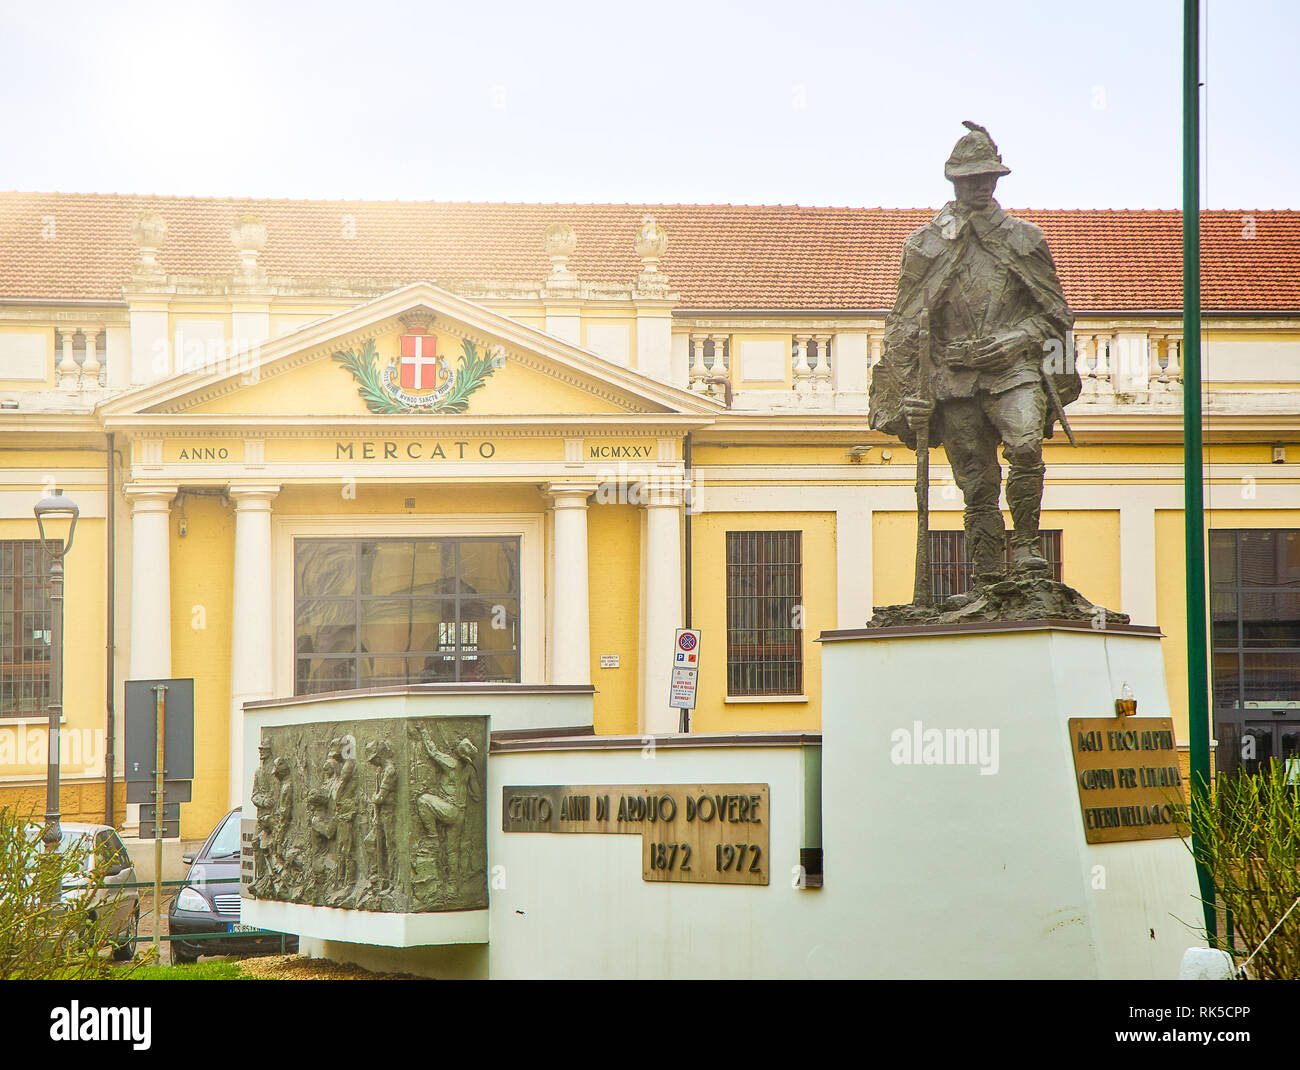 Main facade of The Mercato Coperto market with the Alpino Monument in the foreground. View from the Piazza della Liberta square. Asti, Piedmont, Italy - Stock Image